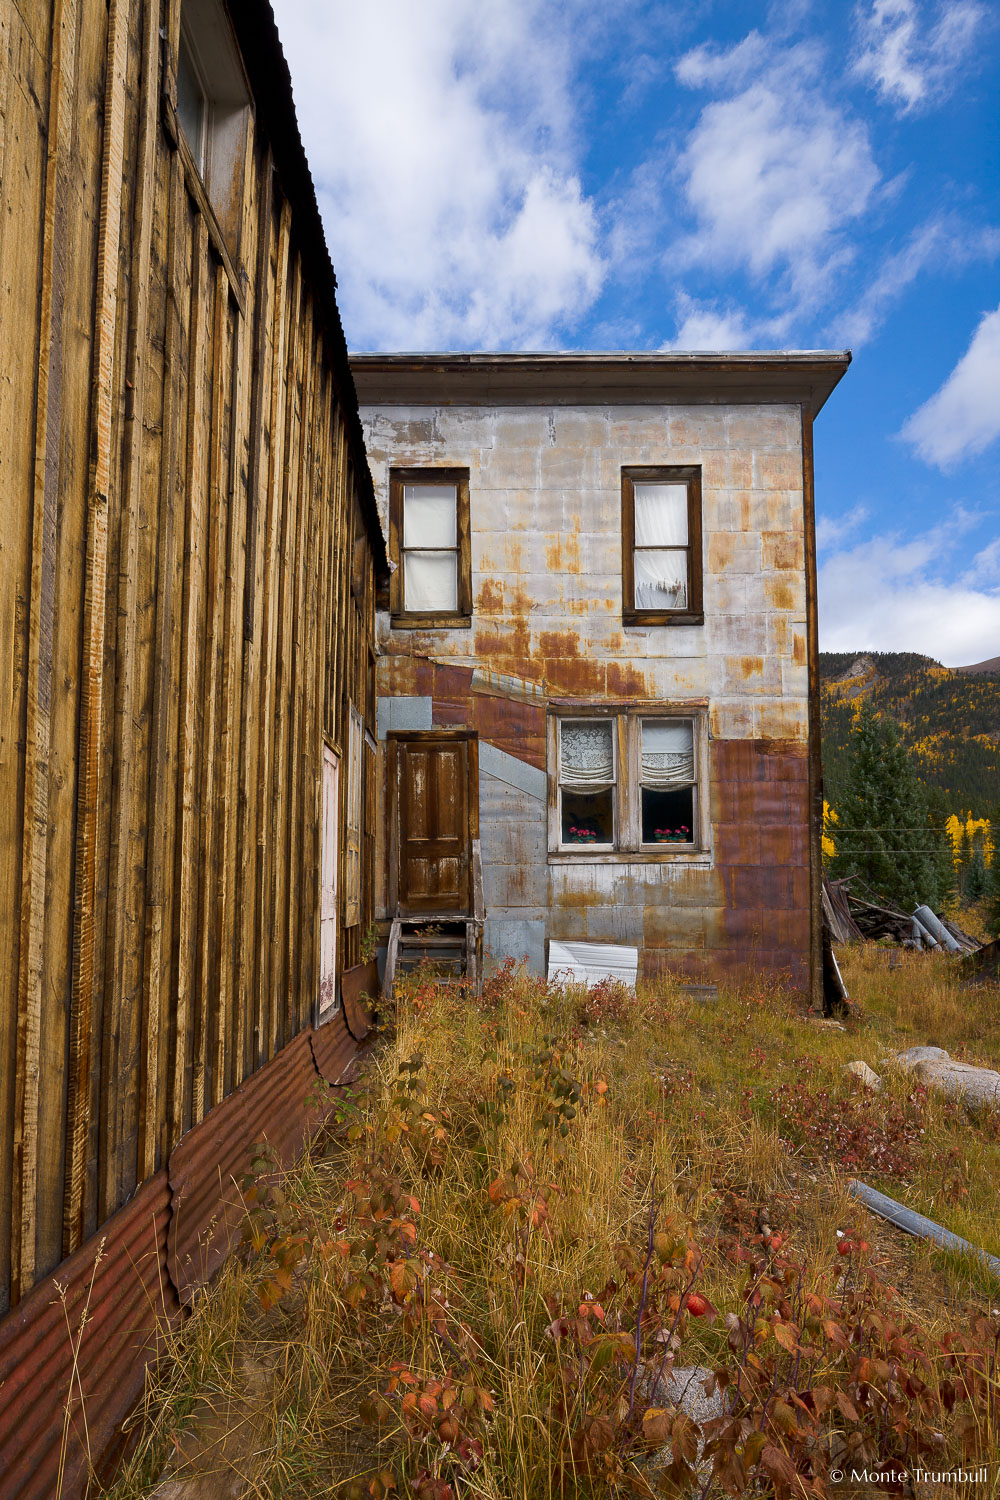 MT-20111004-092614-0041-Colorado-St-Elmo-ghost-town-old-building.jpg